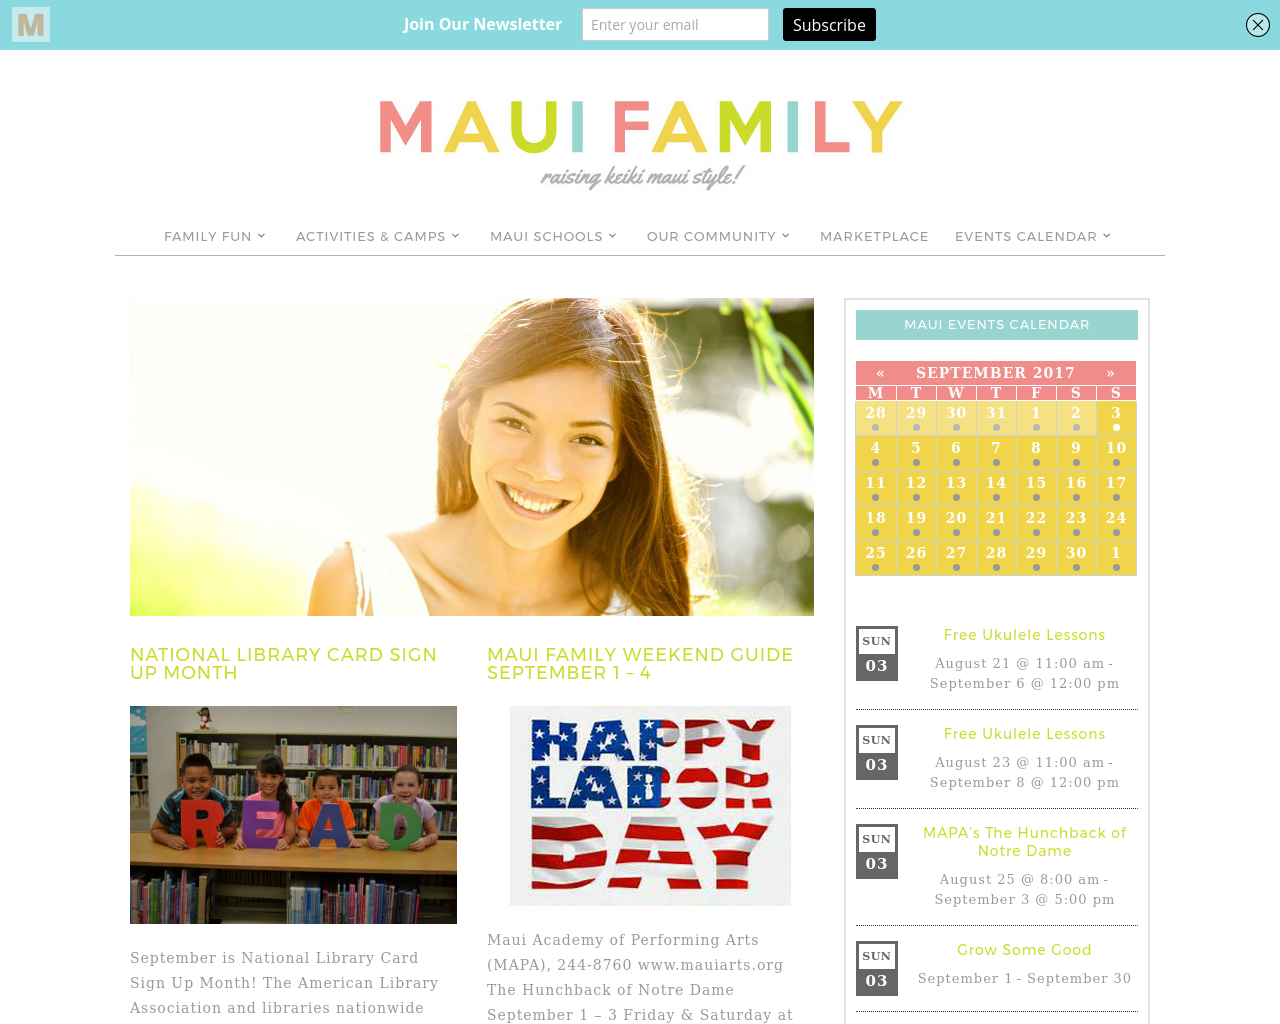 Maui-Family-Magazine-Advertising-Reviews-Pricing